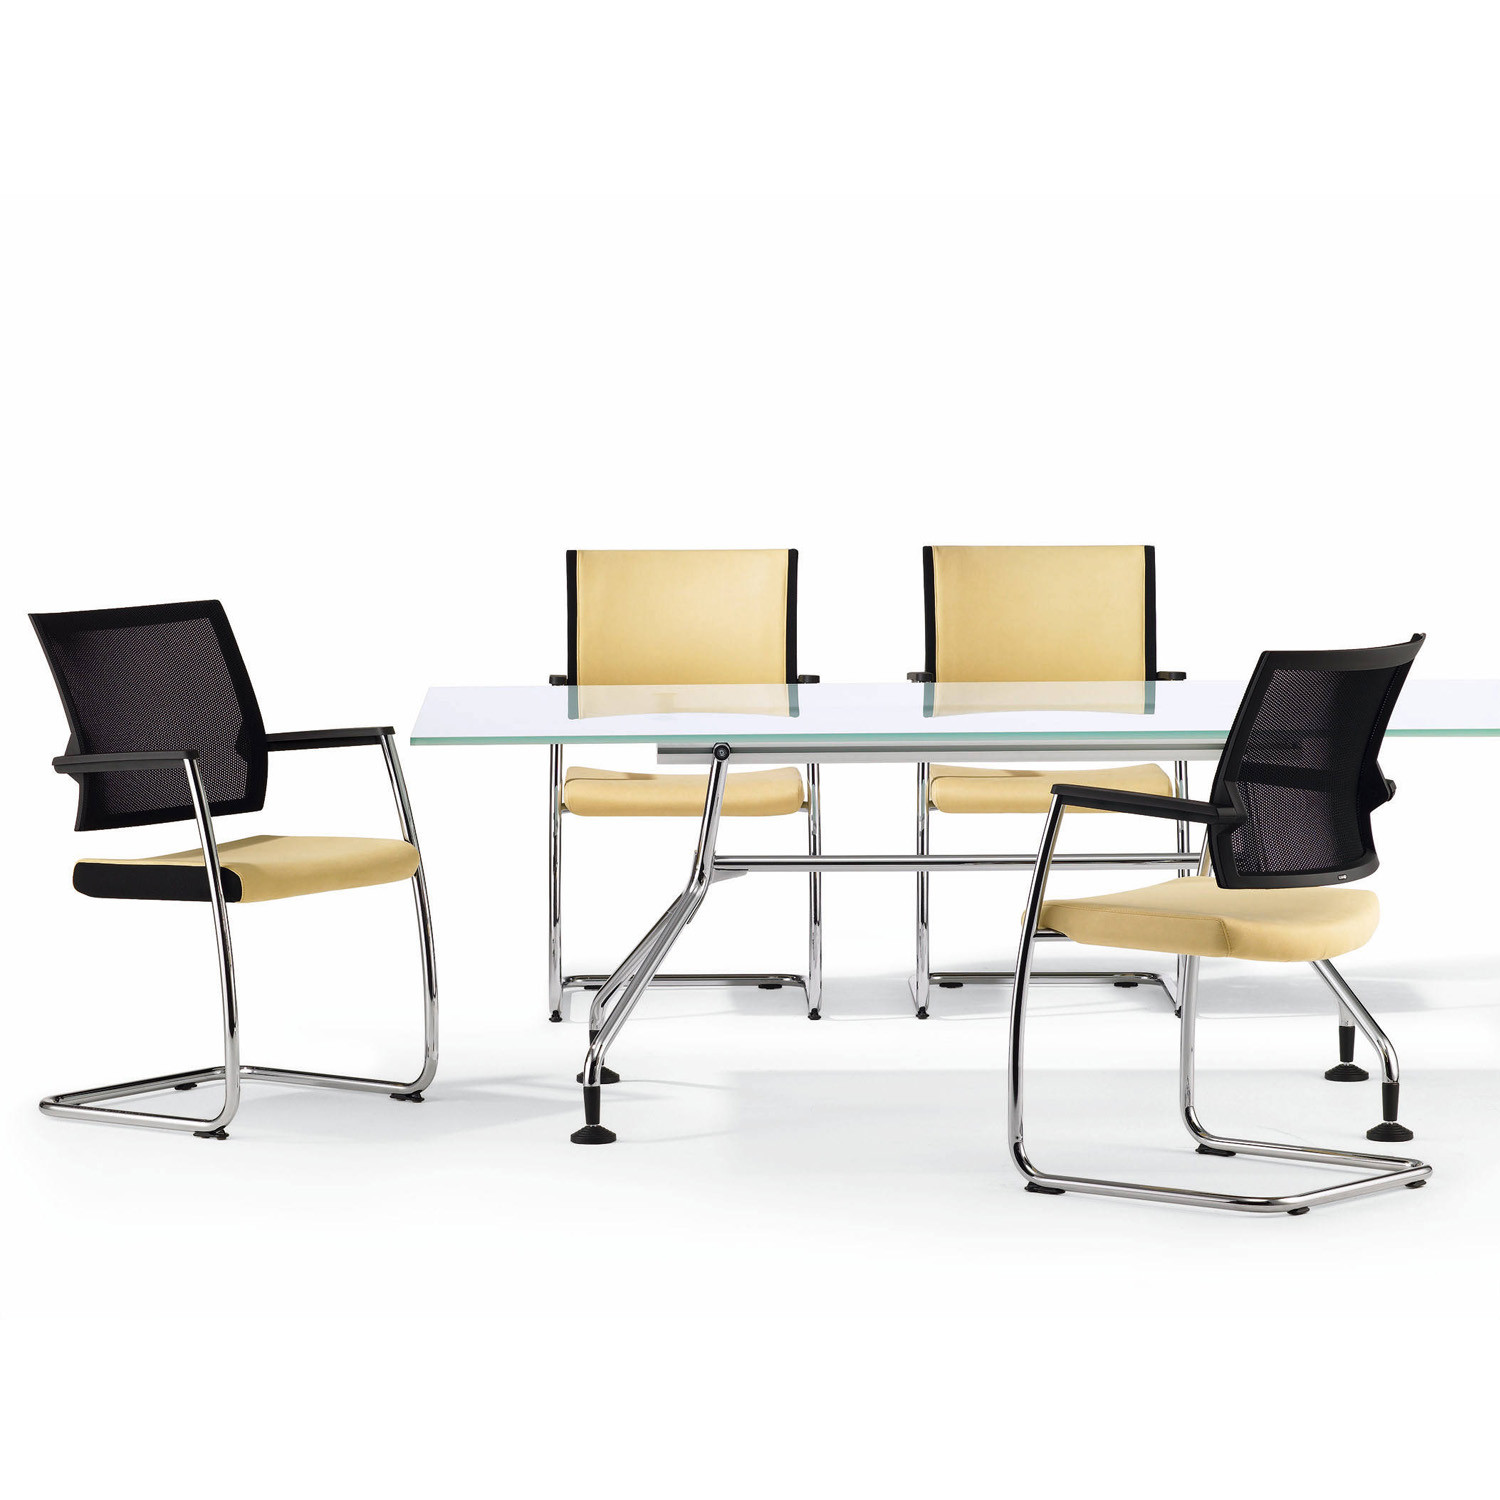 Duera Conference Chairs